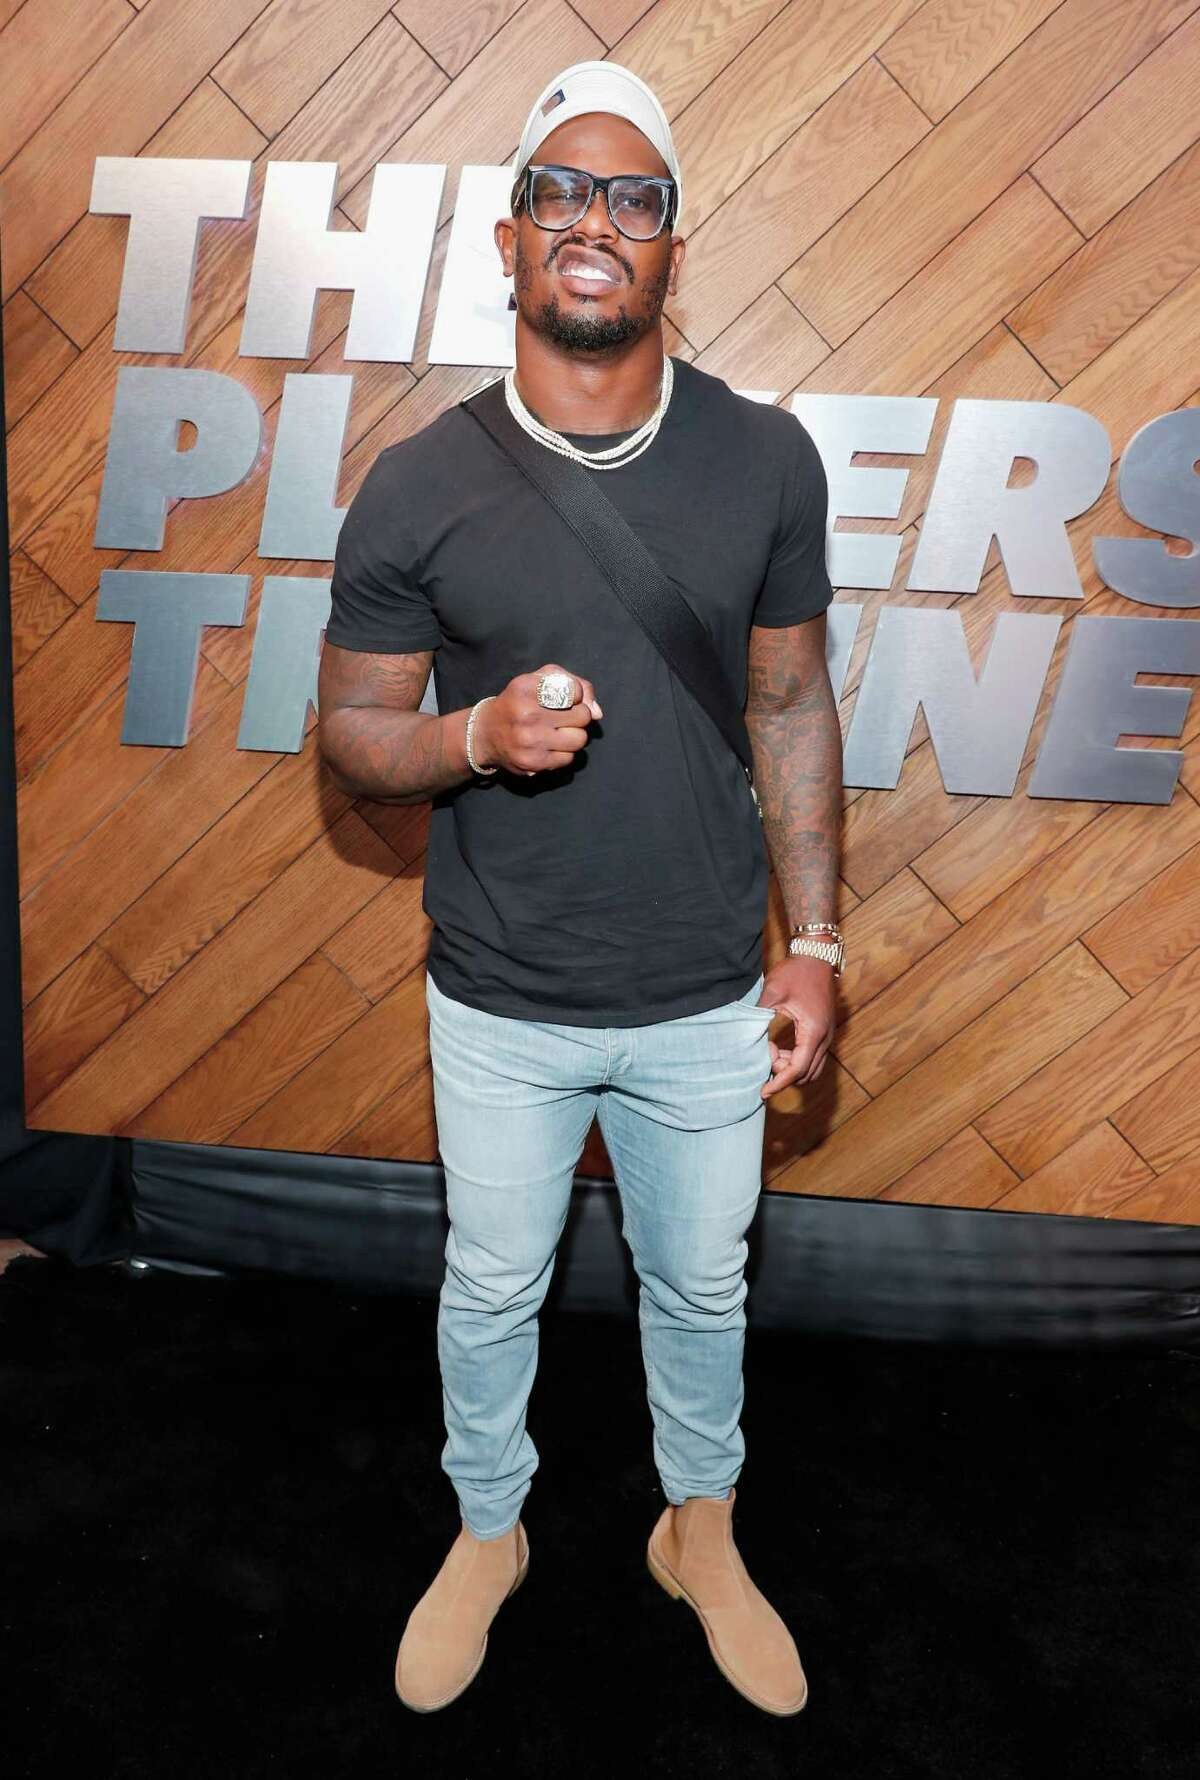 LOS ANGELES, CA - JULY 12: Professional football player Von Miller attends The Players' Tribune Summer Party at No Vacancy on July 12, 2016 in Los Angeles, California.